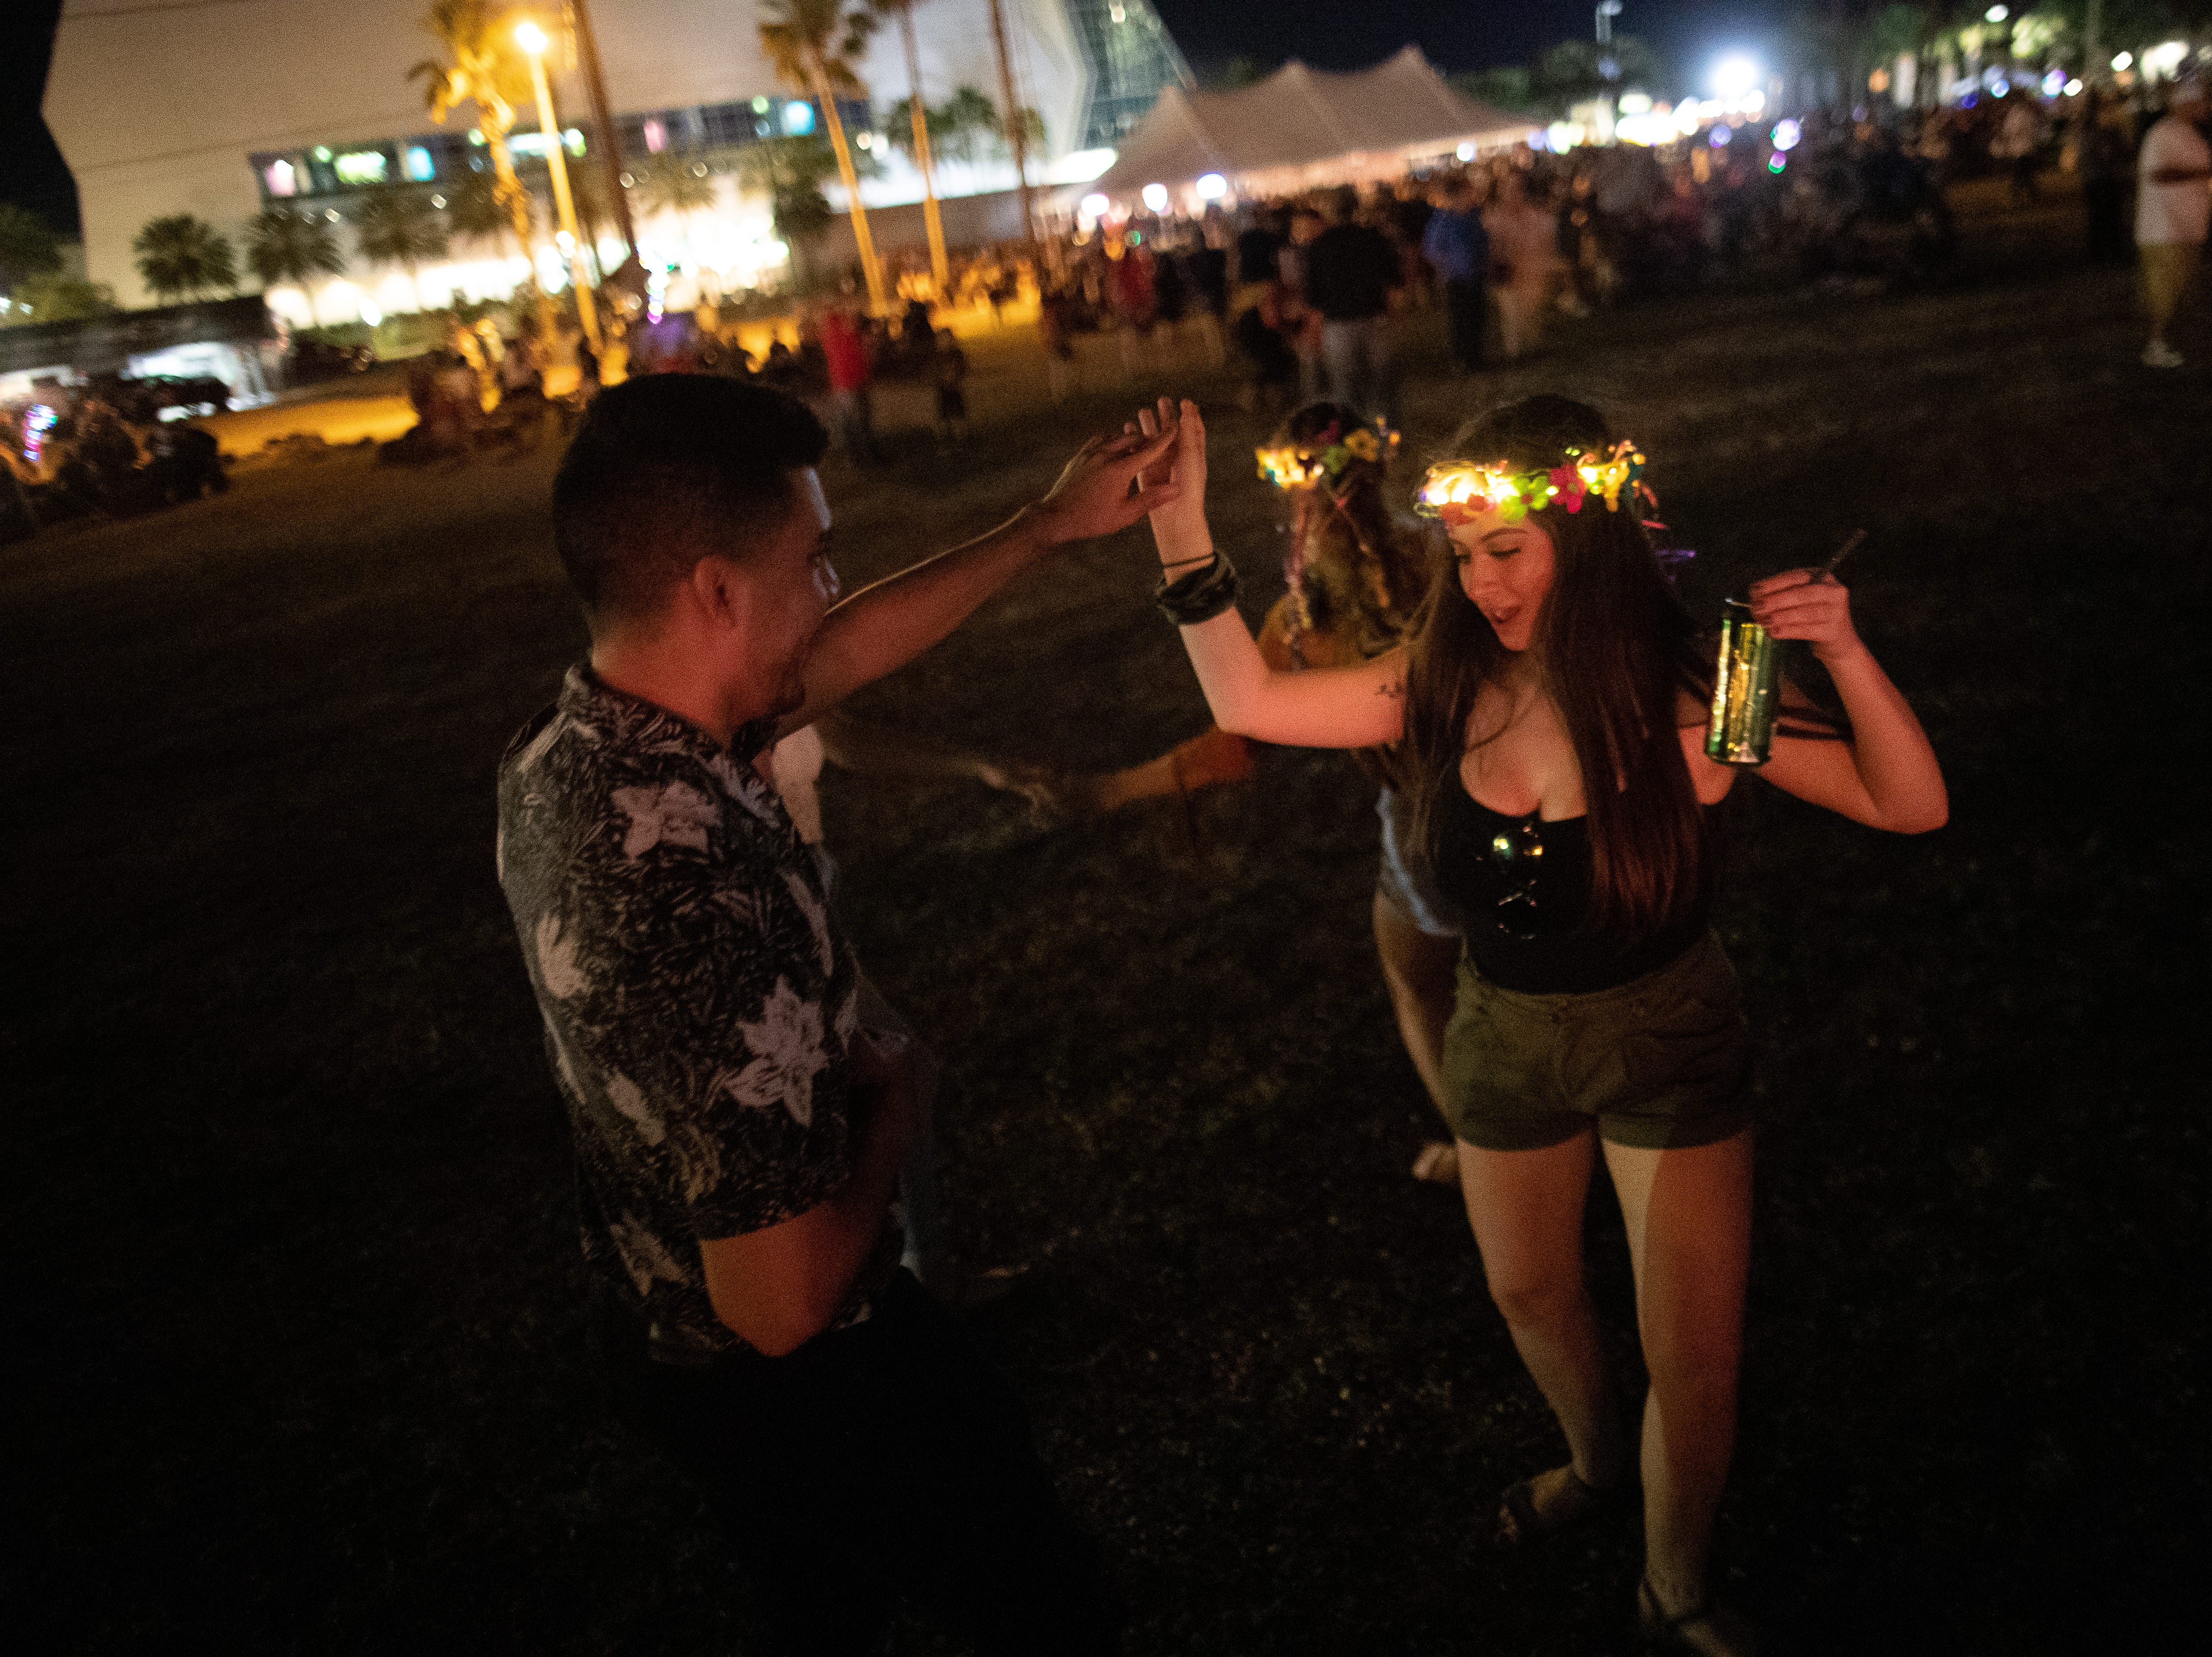 People dance during Eruck Y Su Grupo Massore's during the second day of Fiesta de la Flor on Saturday, April 13, 2019.